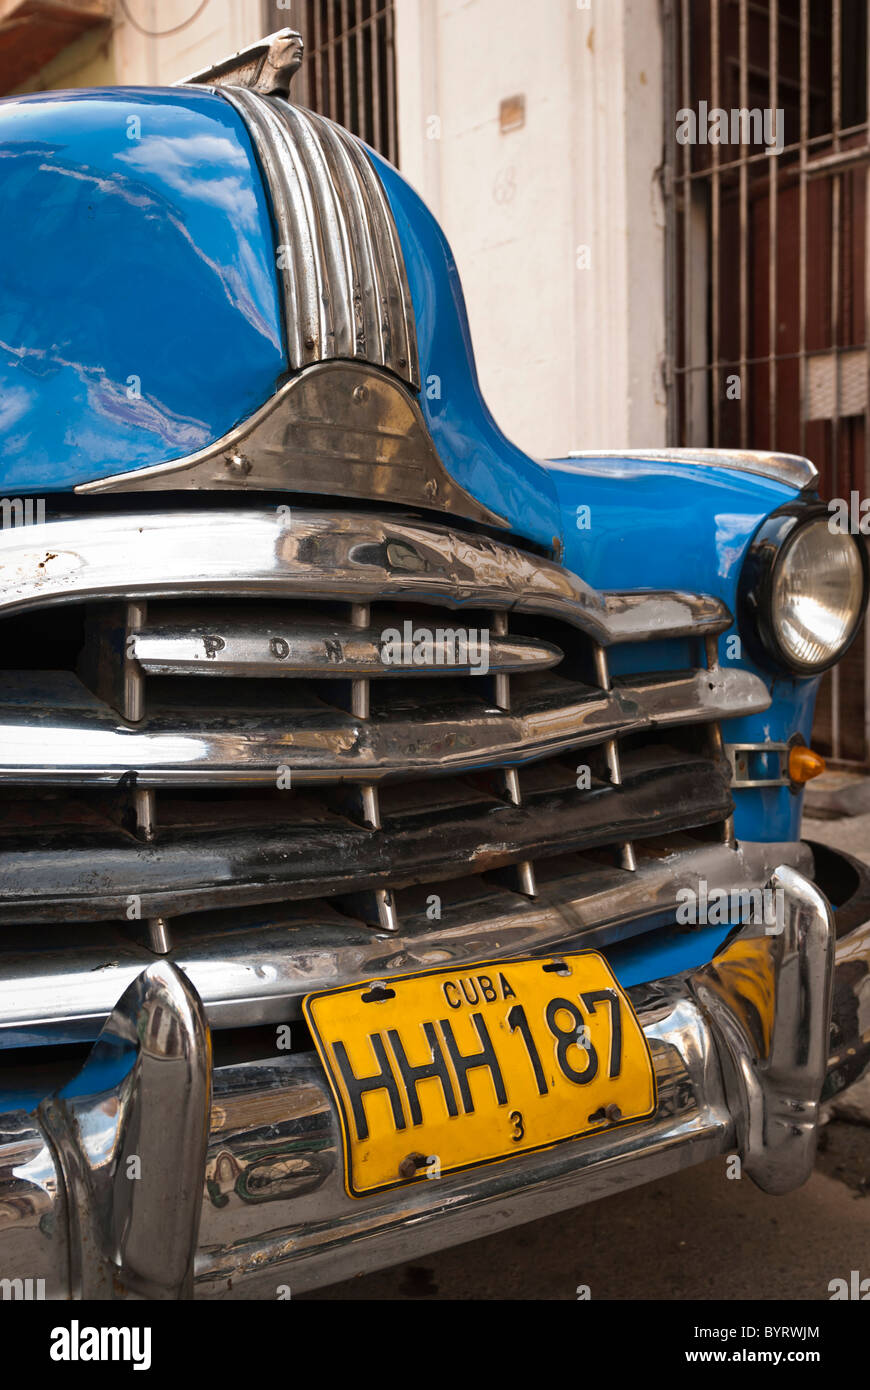 Old Pontiac on the streets of La Habana, Cuba. - Stock Image